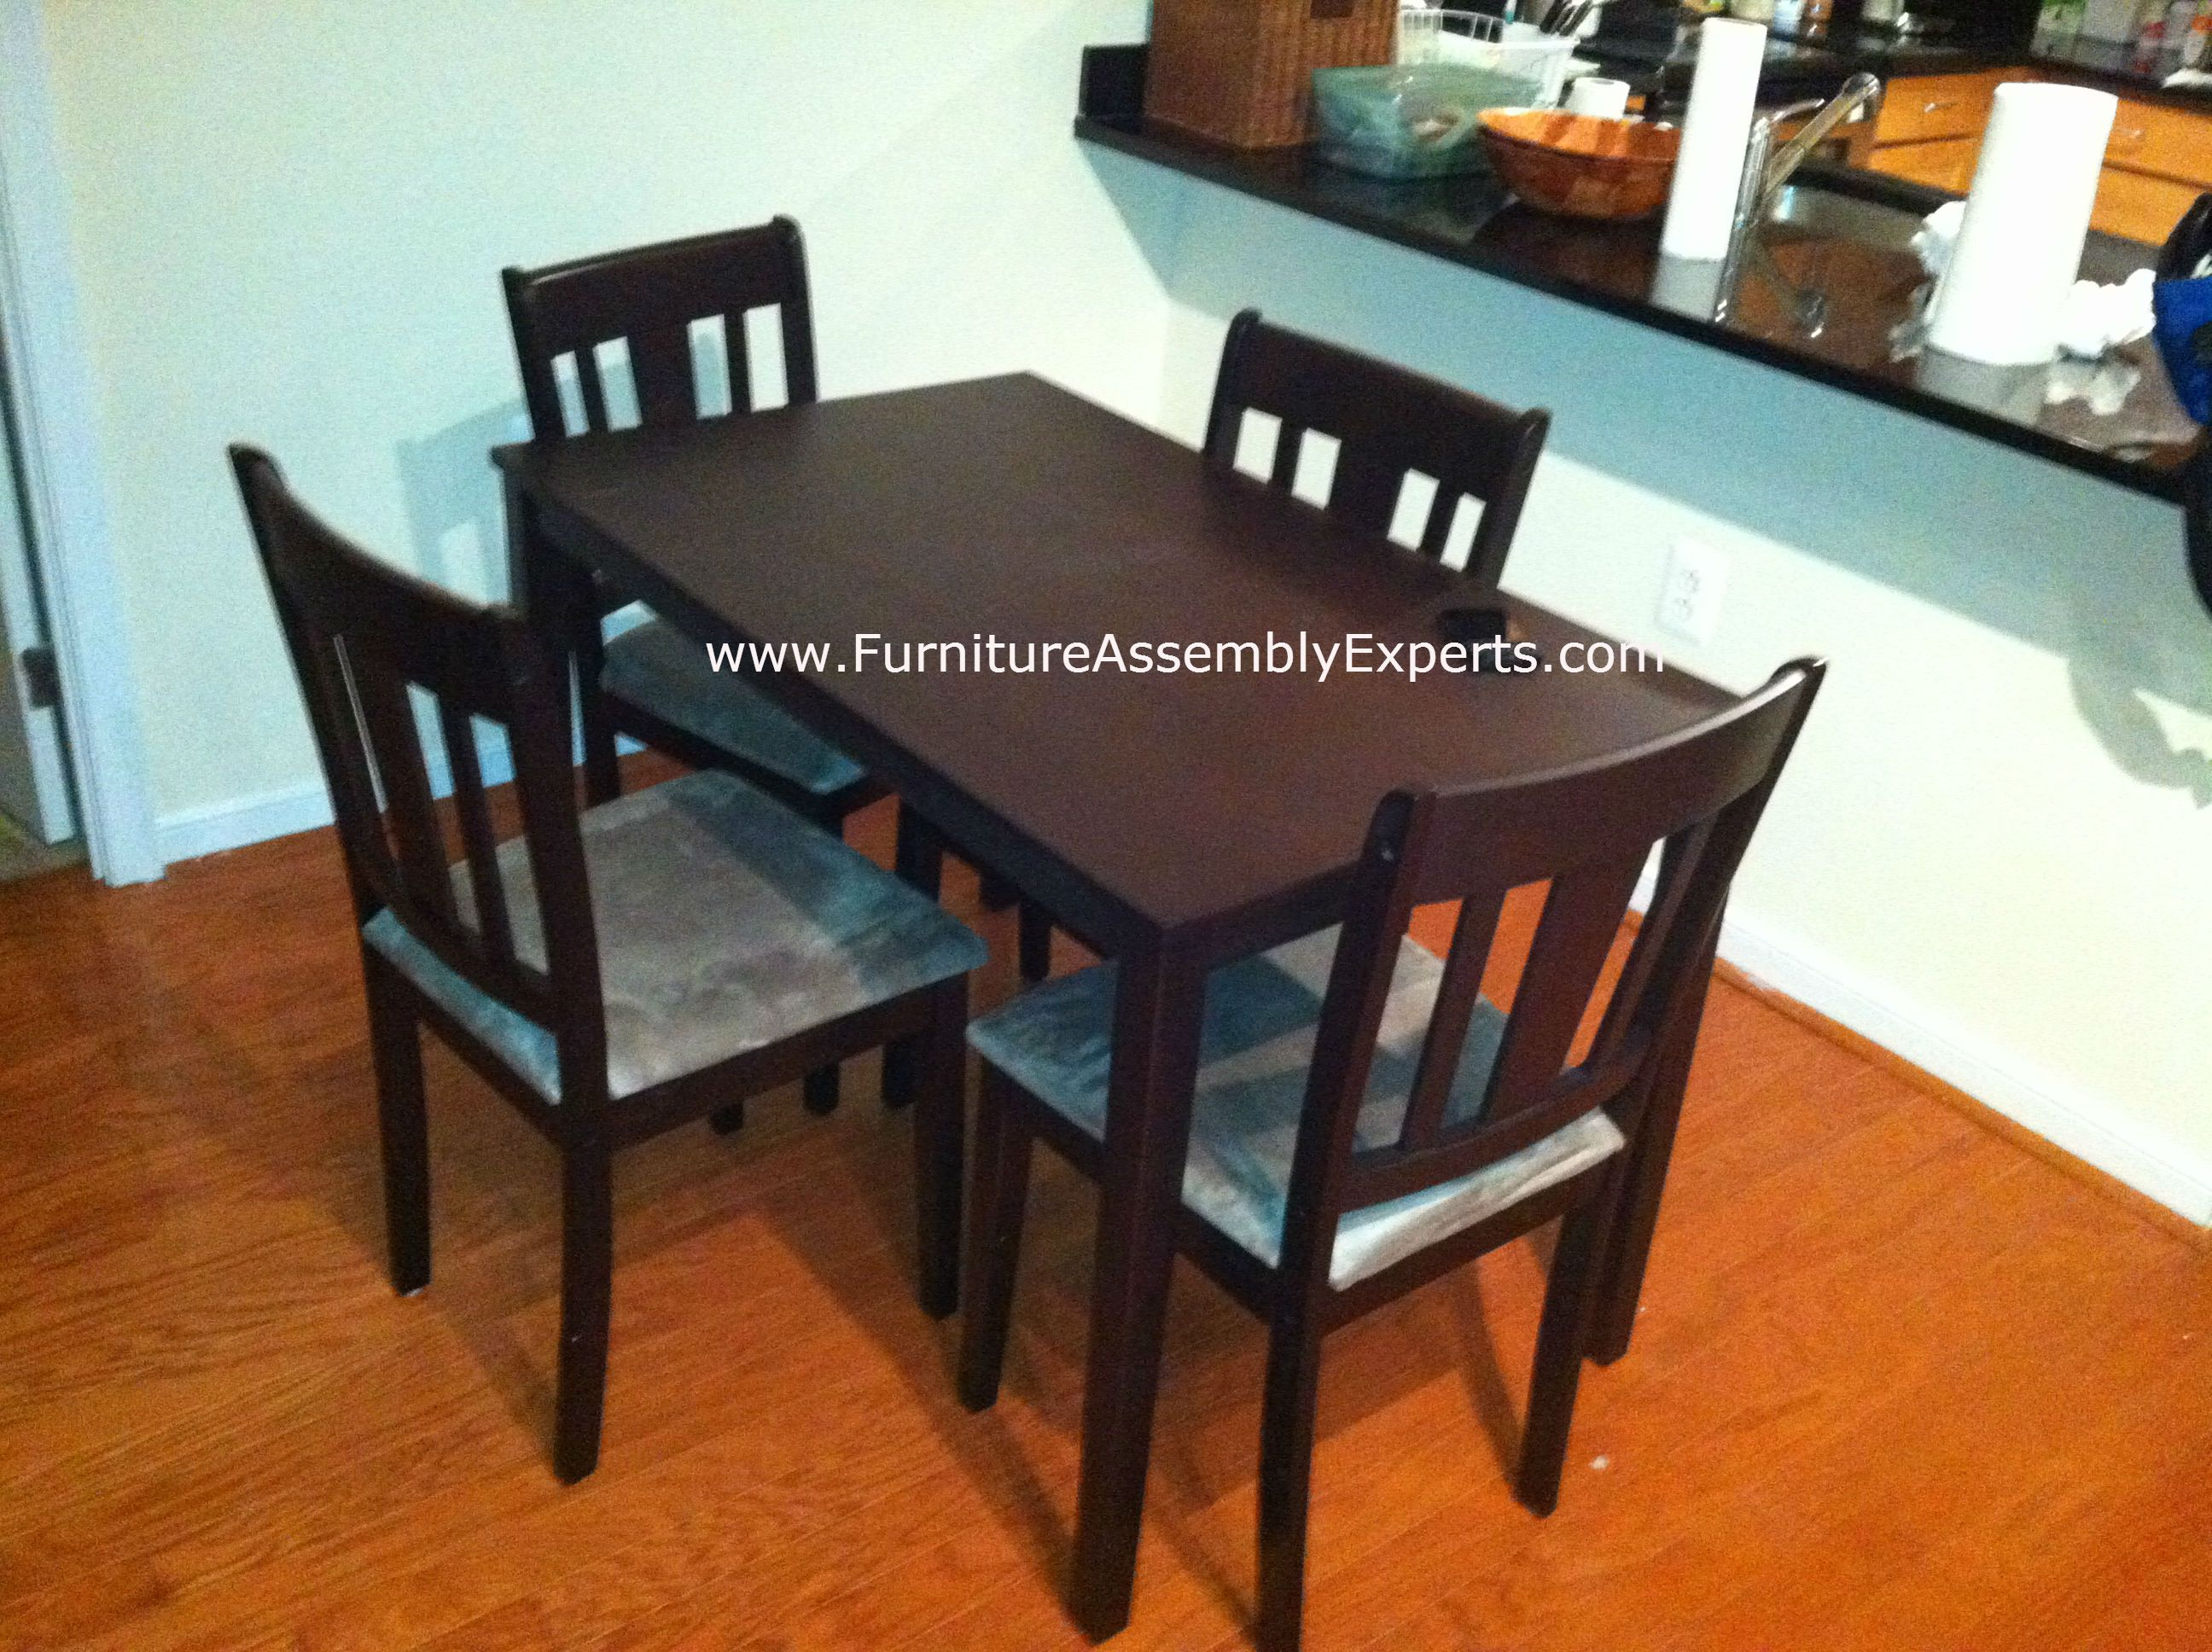 Wayfair Dining Table And Chairs Embled In Glen Burnie Md By Furniture Embly Experts Llc Call 2407052263